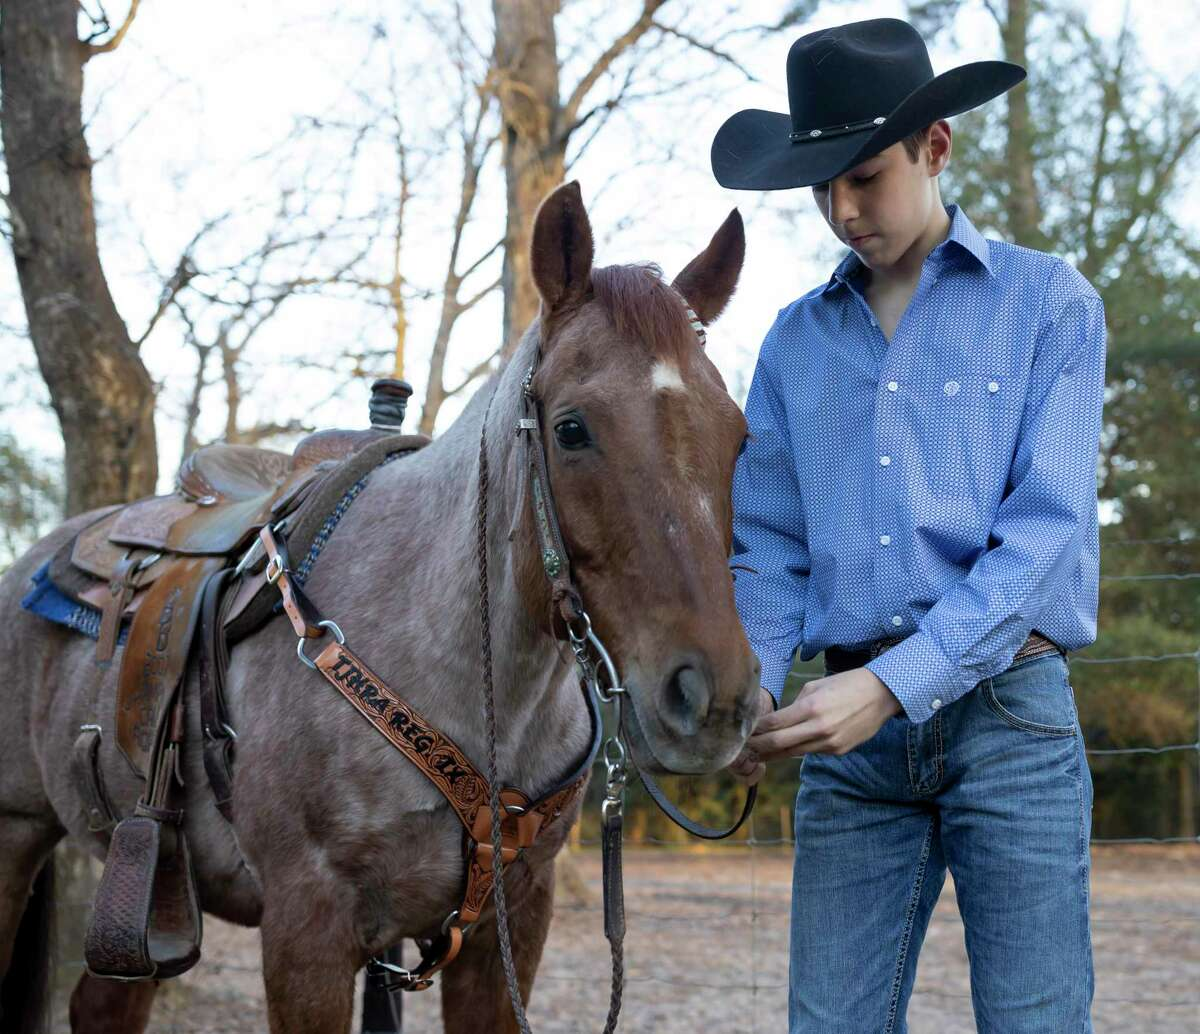 Dean Holtkamp, 14, inspects Busters' Prince Roan's harness, in Conroe, Friday, Feb 28, 2020. Holtkamp was awarded the All Around Cowboy Rookie of the Year saddle for 2020.